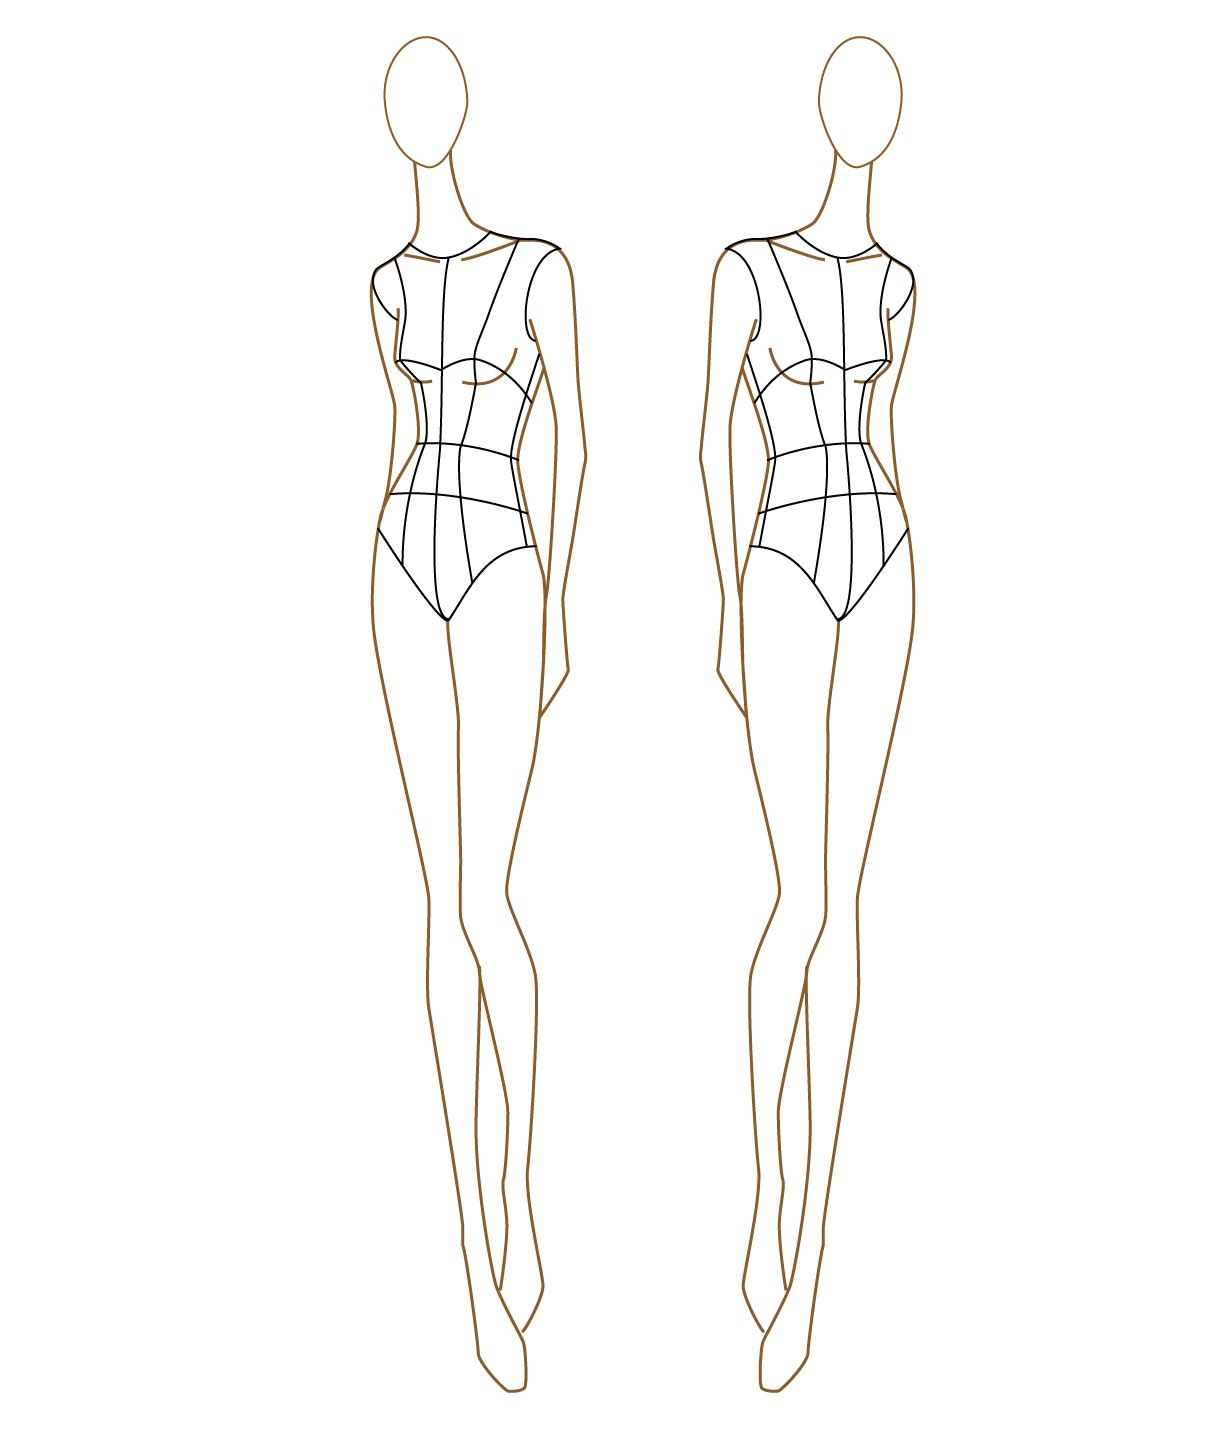 Clothing Model Sketch At Paintingvalley  Explore Collection Of Pertaining To Blank Model Sketch Template